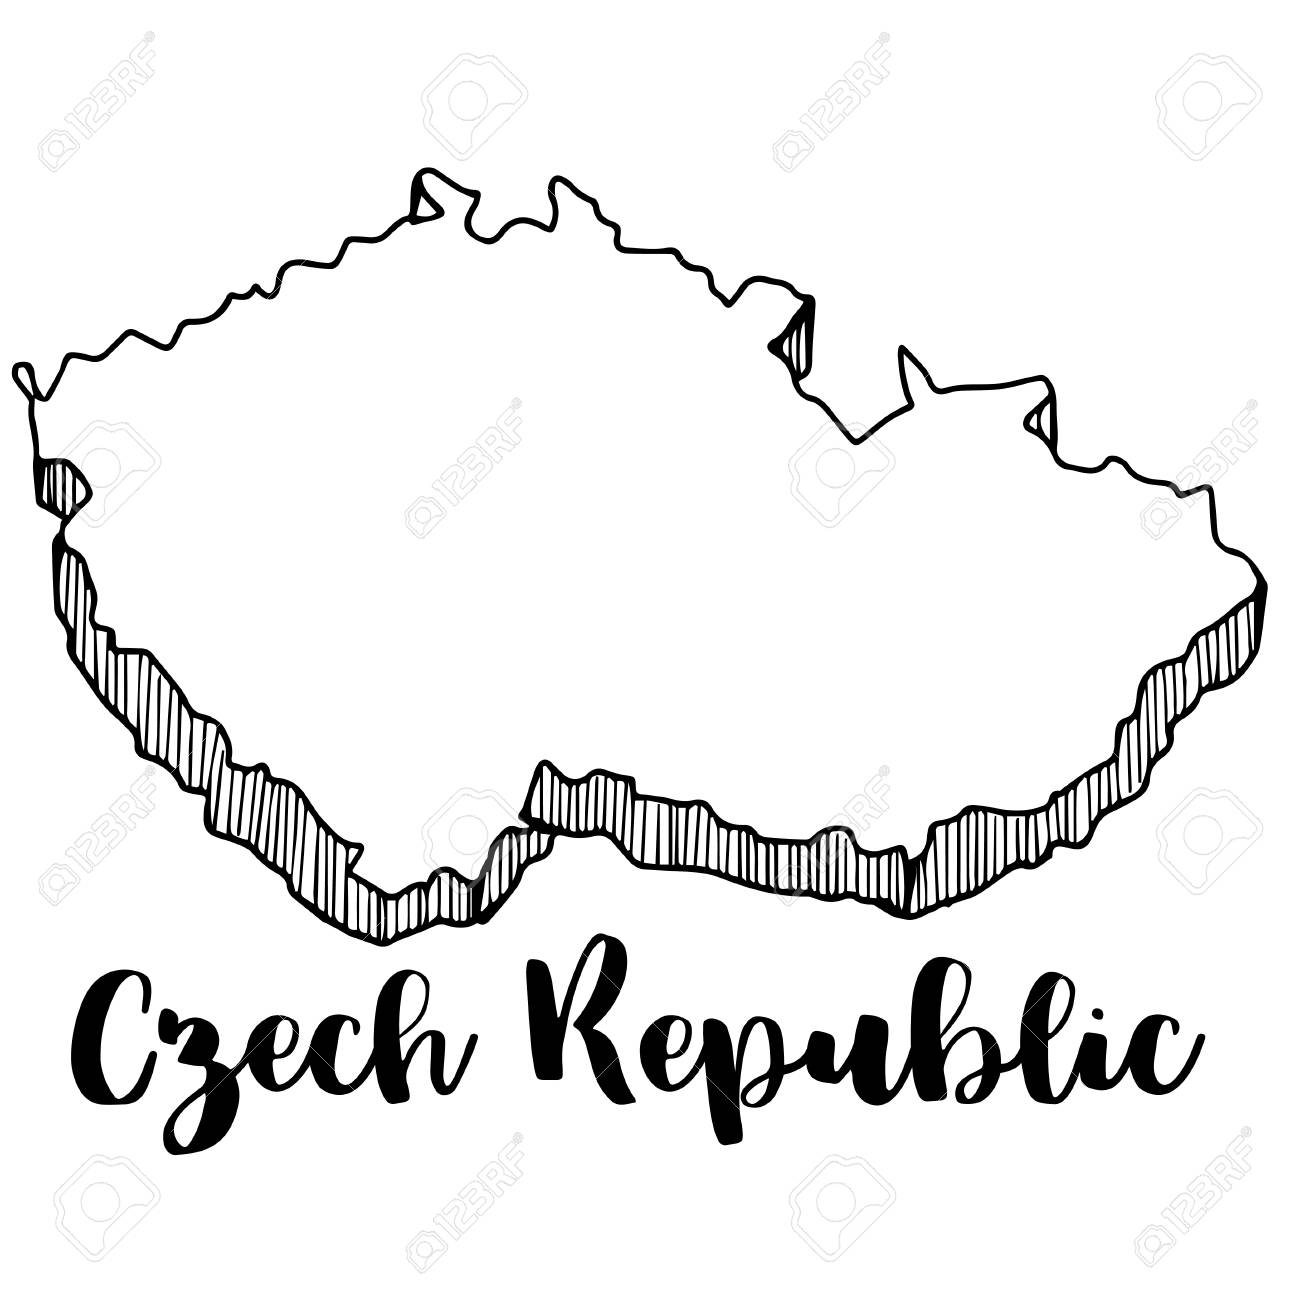 Hand Drawn Of Czech Republic Map Vector Illustration Royalty Free